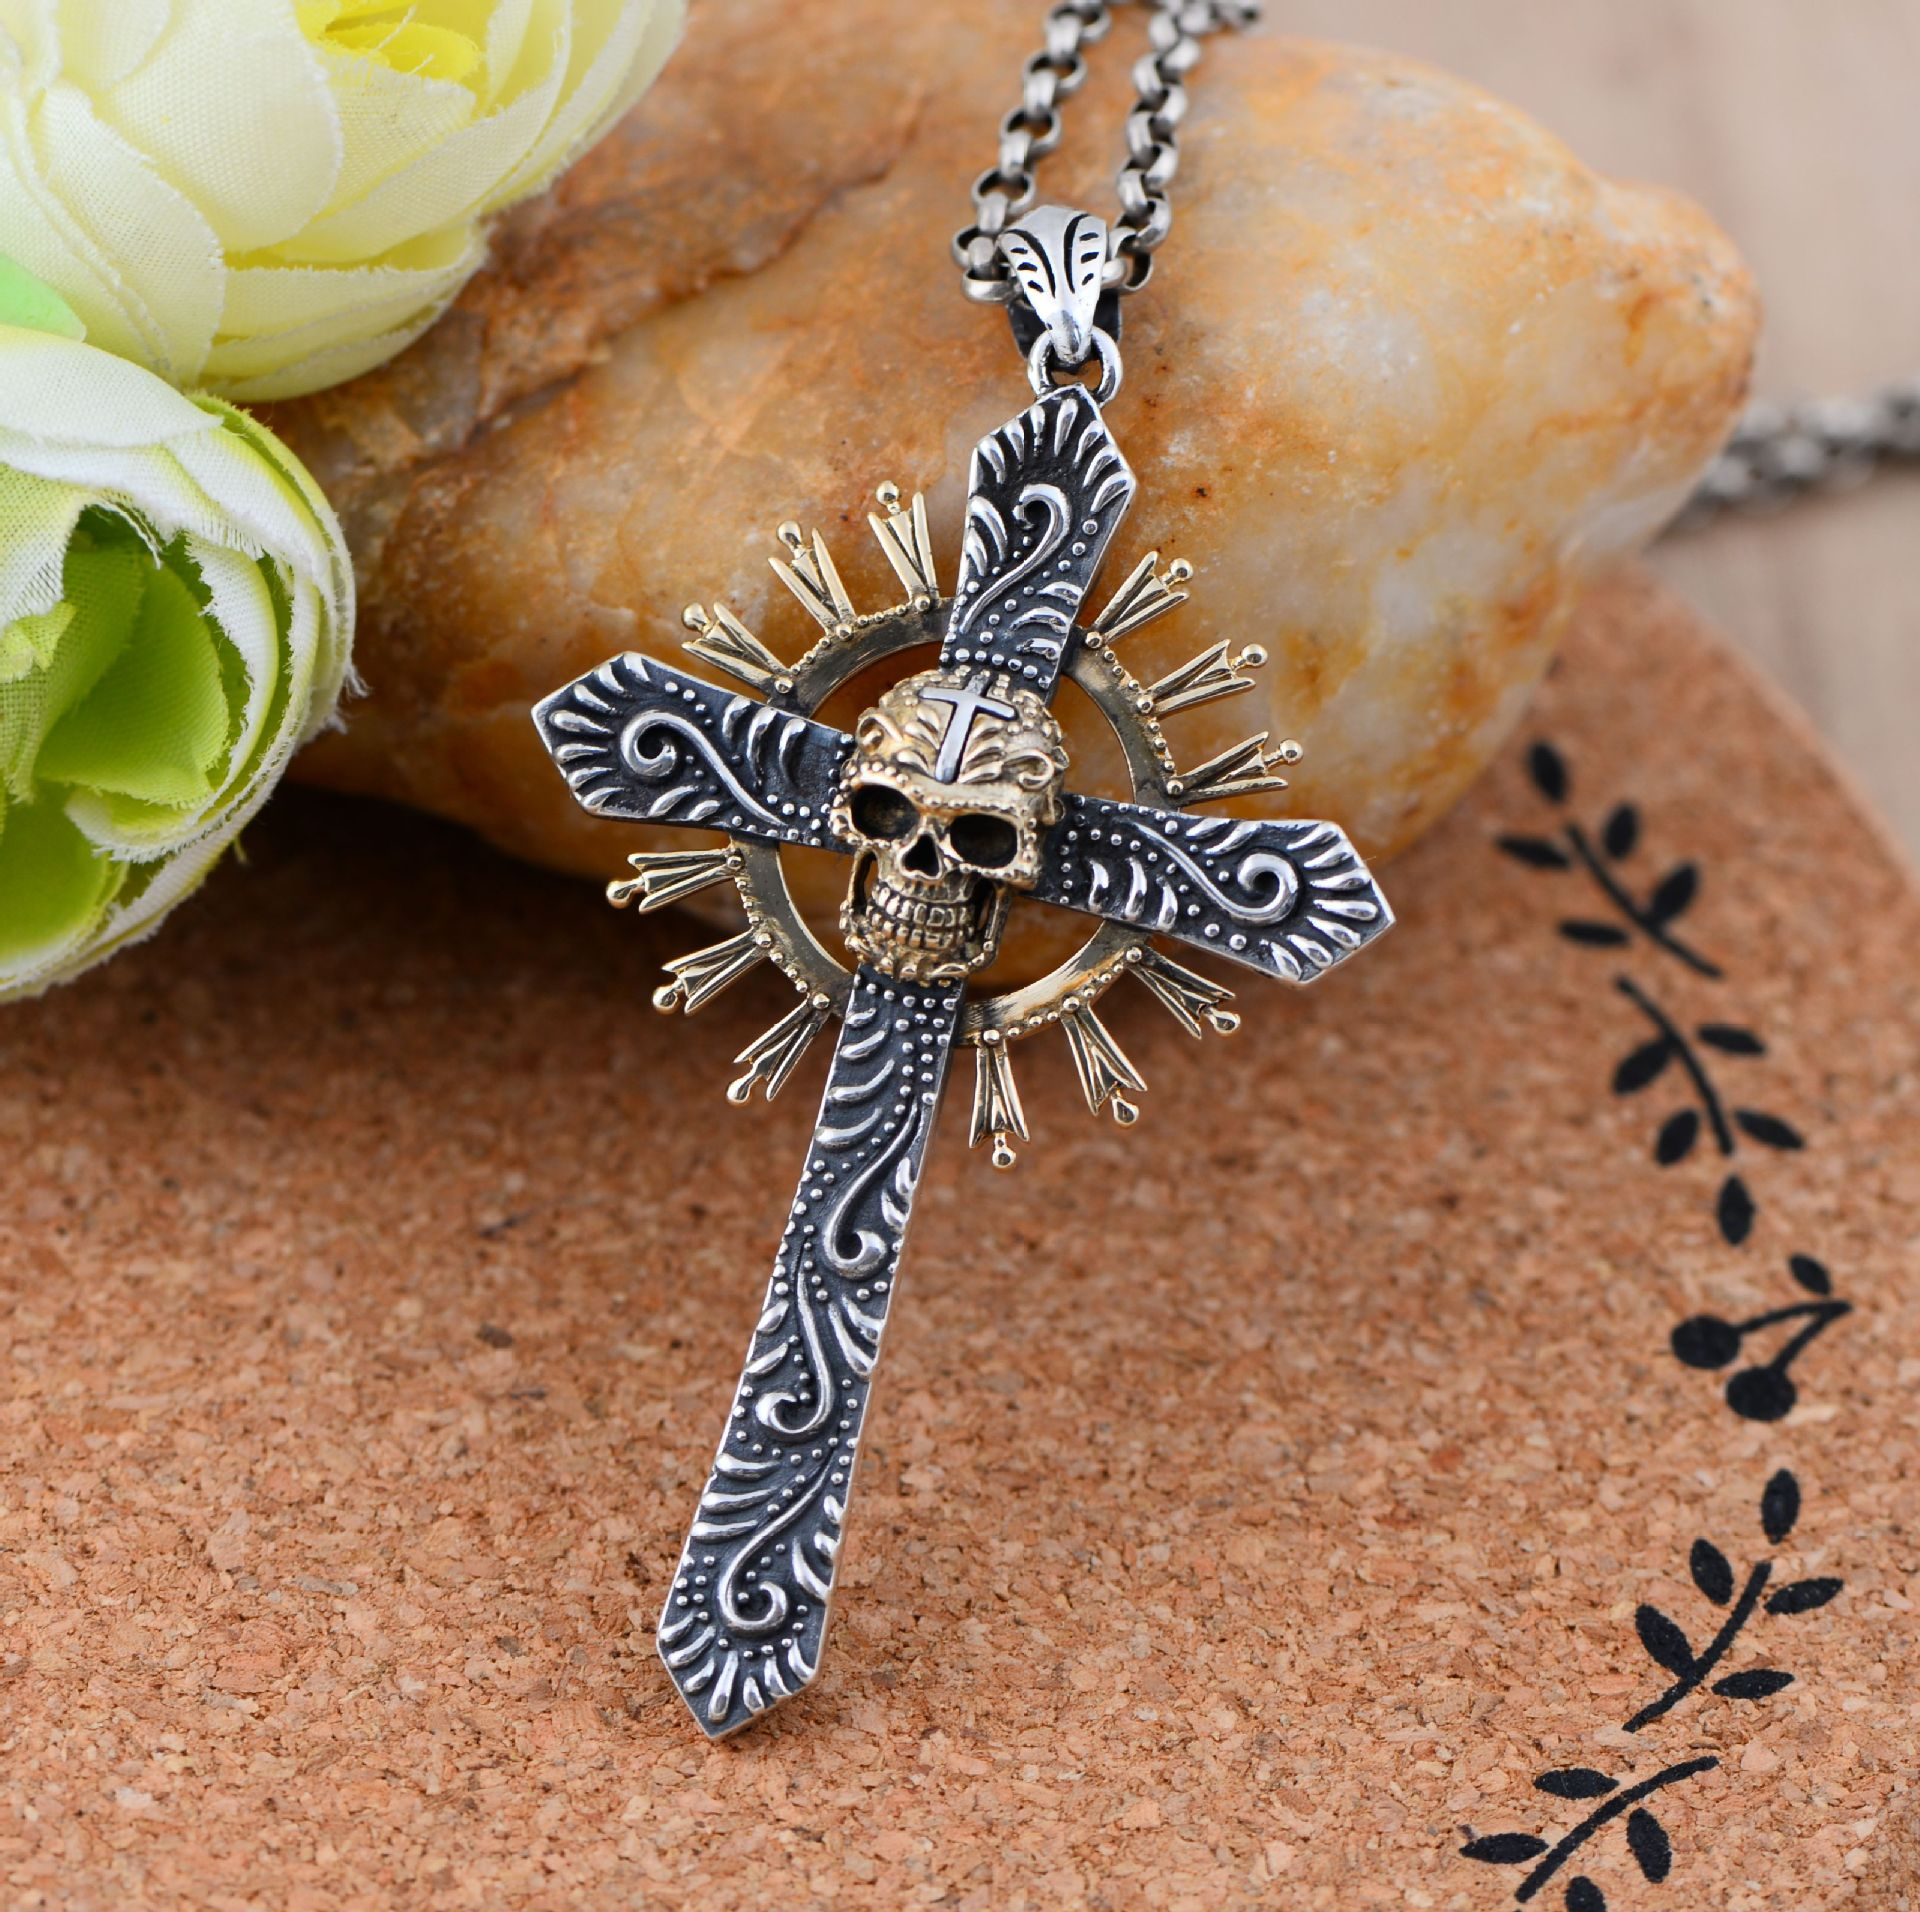 Black silver jewelry wholesale 925 Sterling Silver Thailand import Cross Skull Pendant 046730w men's personality серьги с кварцем и бриллиантами из желтого золота valtera 55039